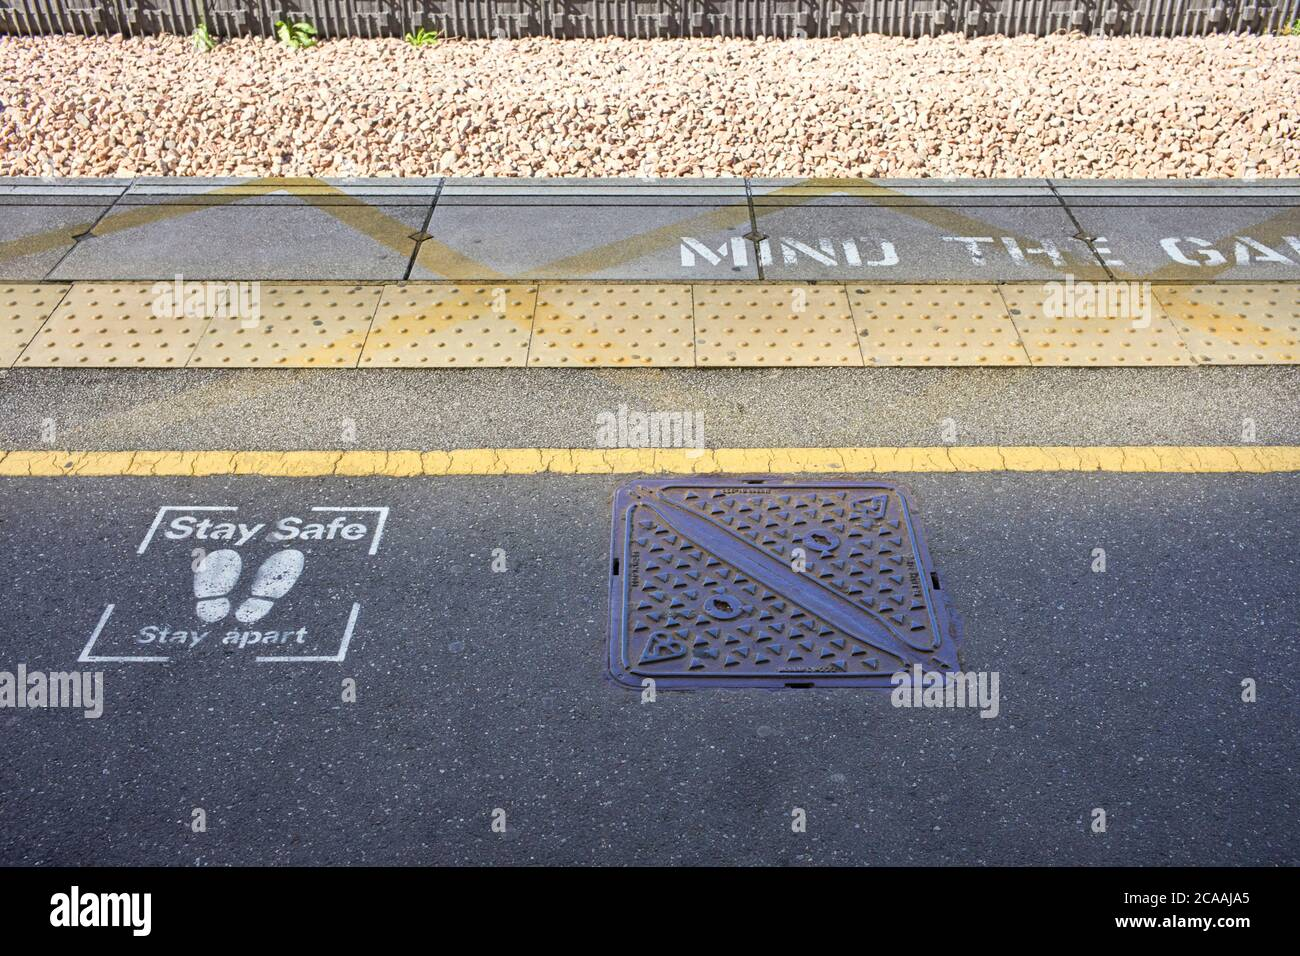 Stay safe, stay apart sprayed on messages at Milton Keynes, railway station Stock Photo